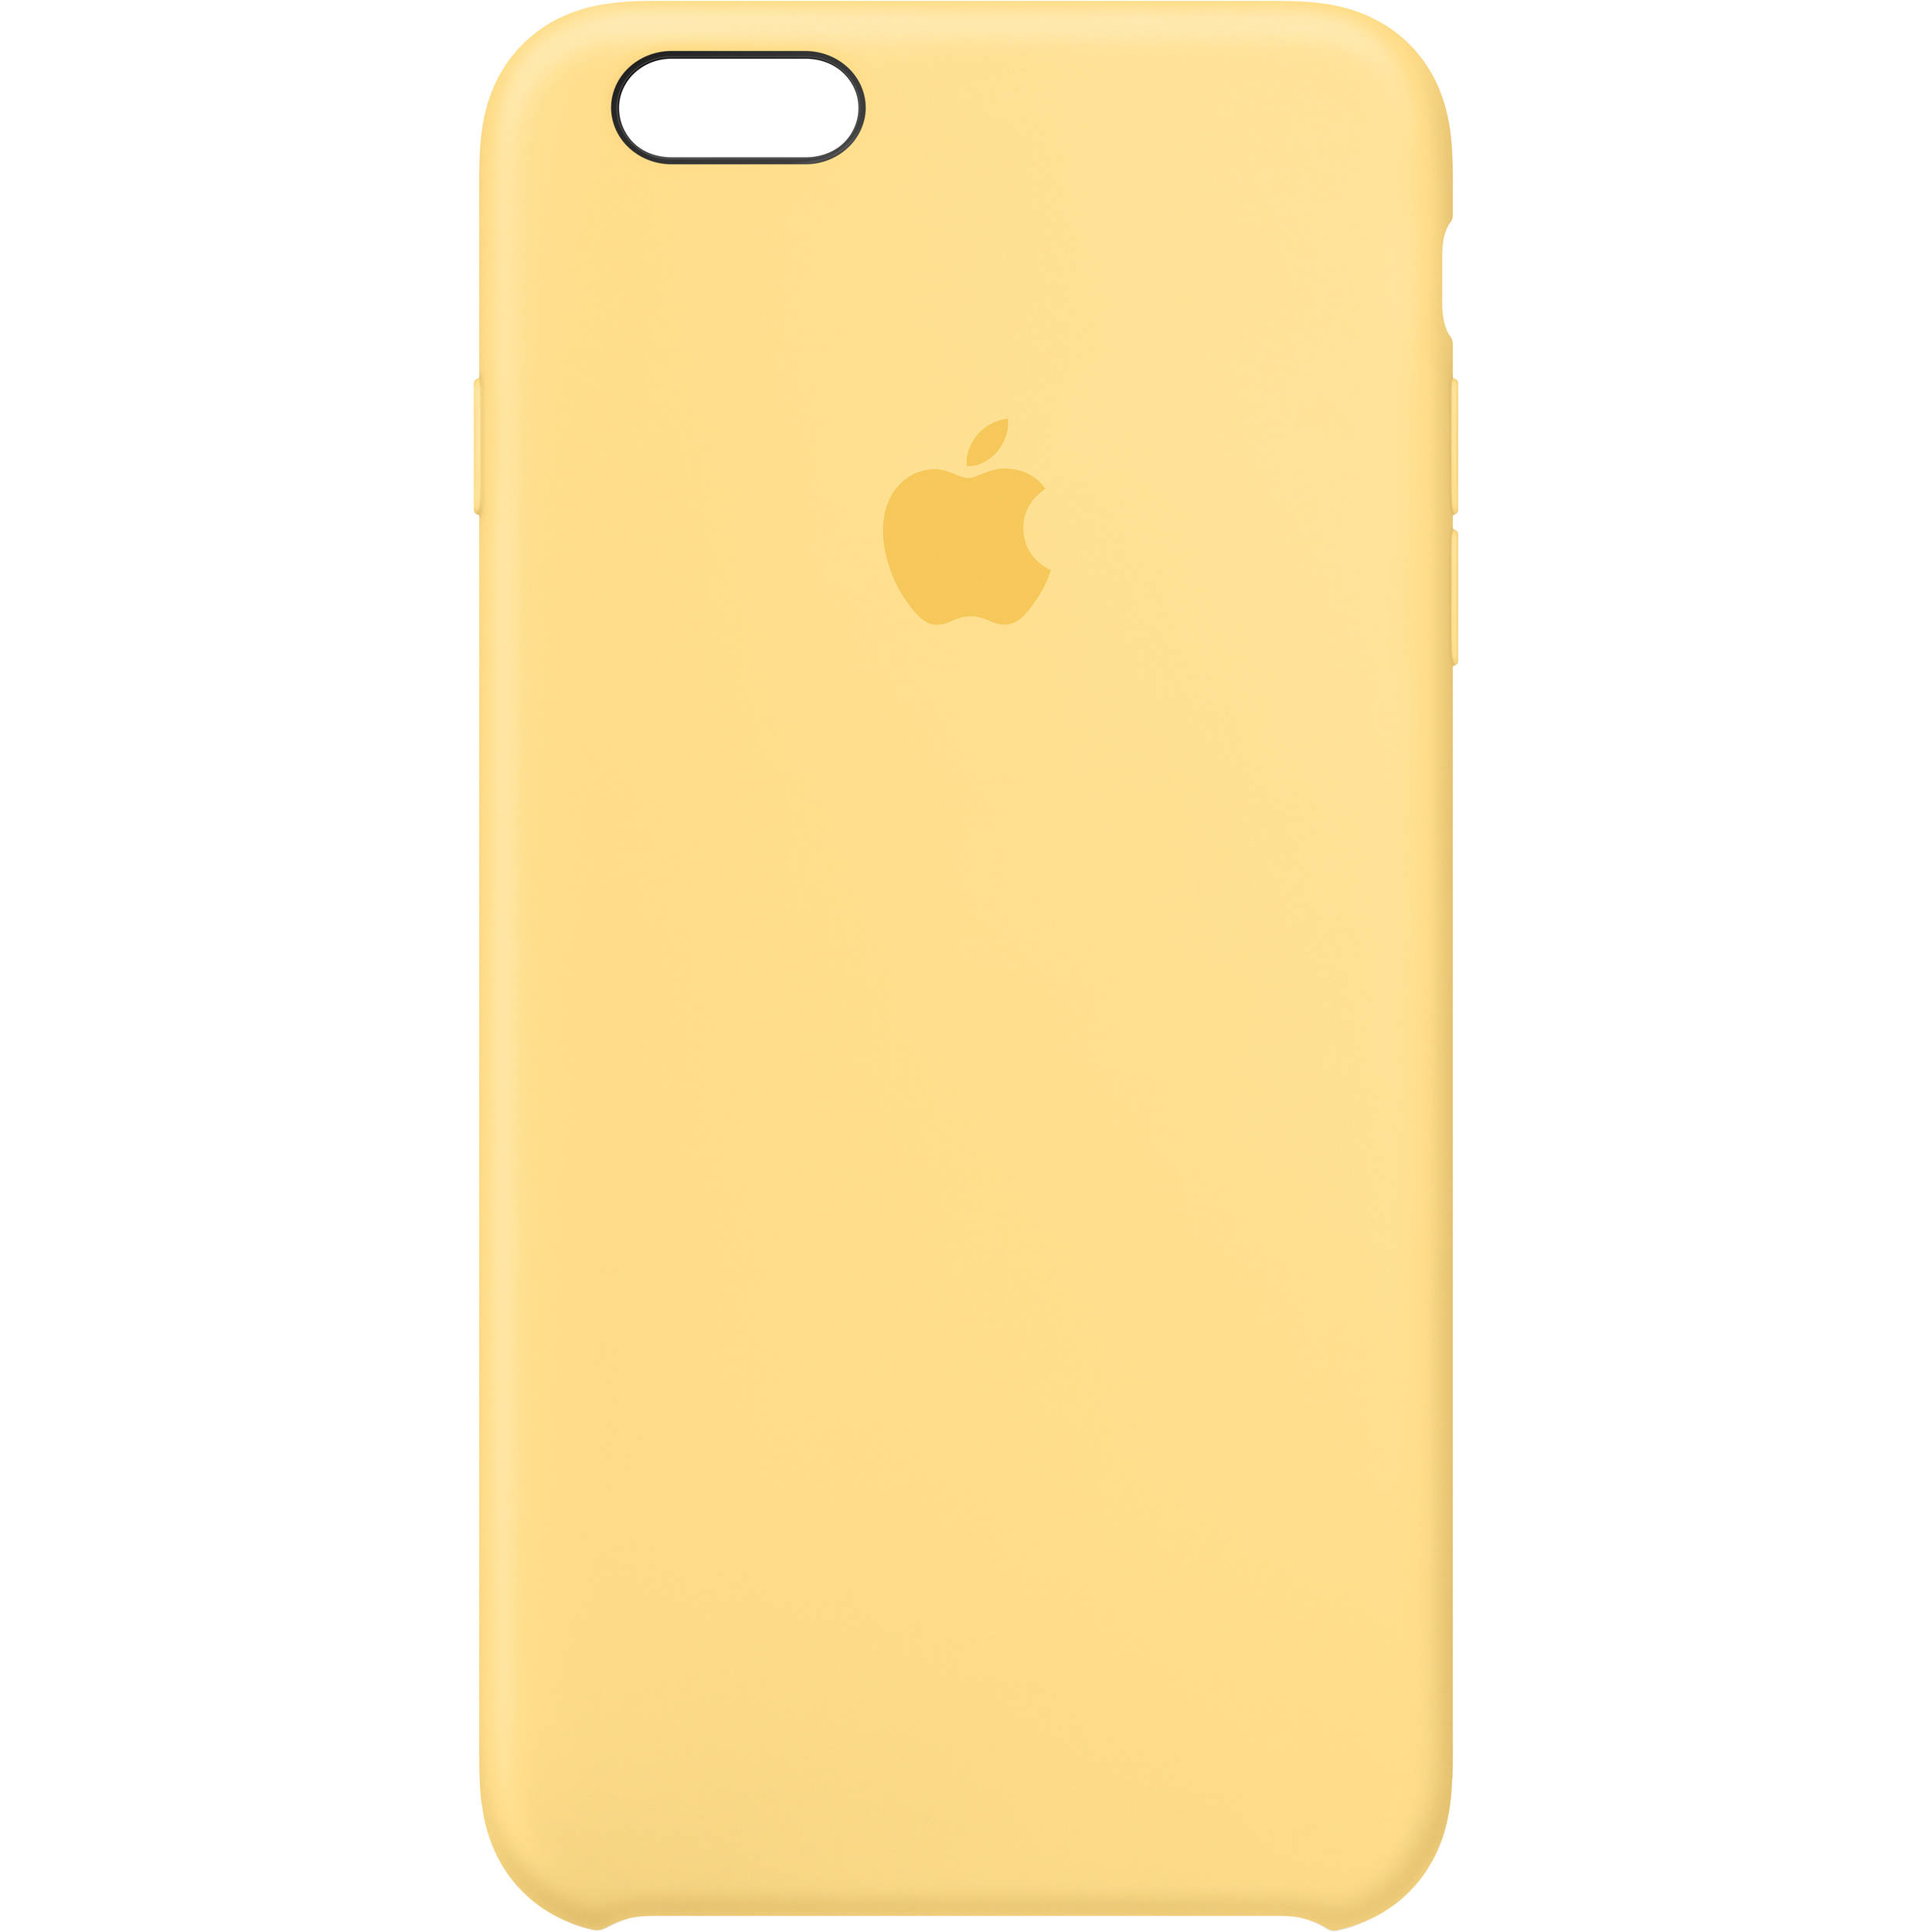 80acc4fc9e9a Apple iPhone 6 Plus/6s Plus Silicone Case (Yellow) MM6H2ZM/A B&H